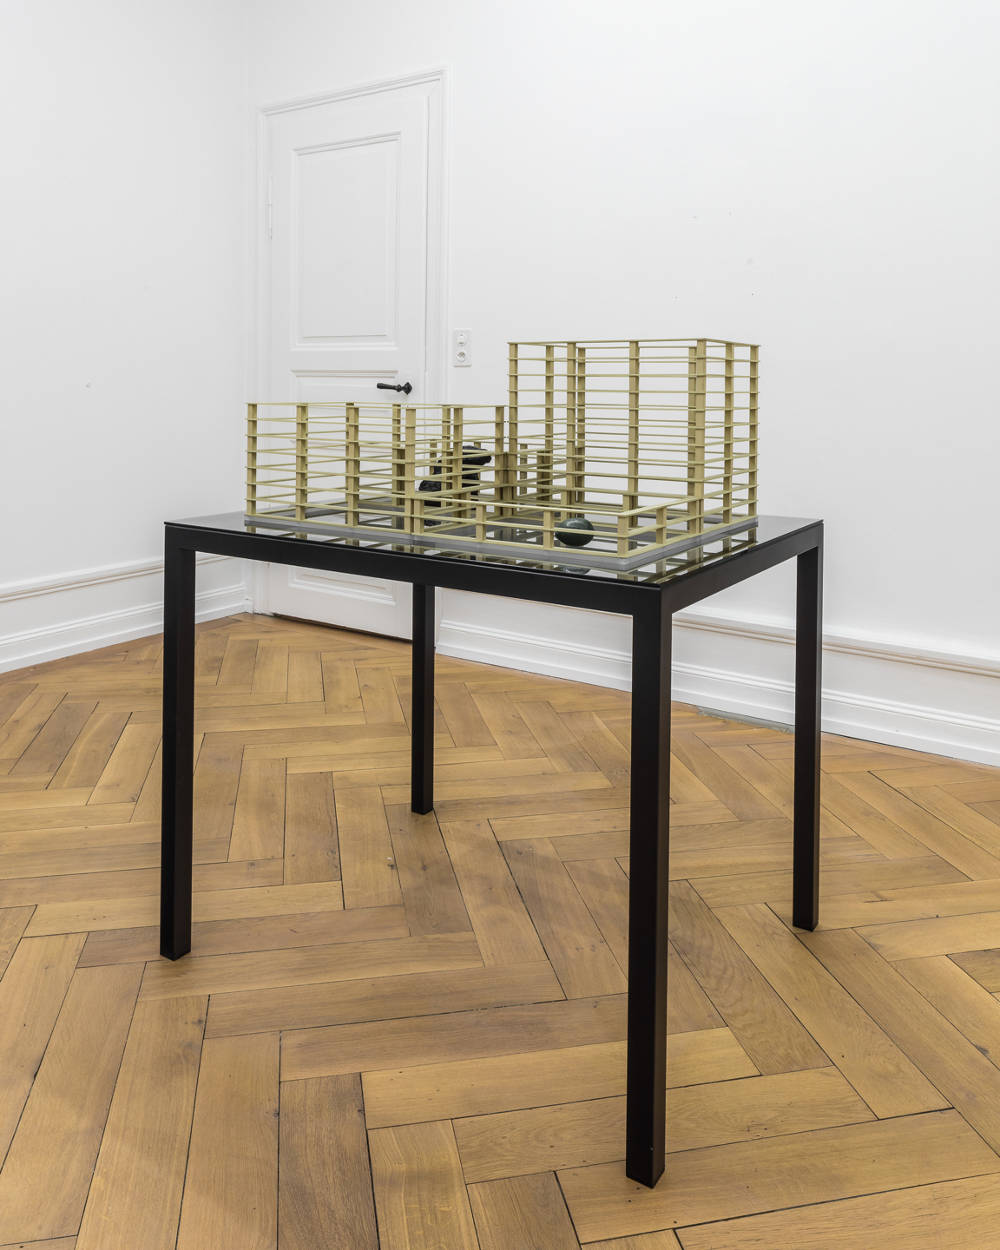 Jorge Méndez Blake, Project for an Empty Library (For James Joyce) , 2019. Brass, bronze, smoked mirror, iron, 2 parts, total 115.5 x 98 x 98 cm (45 1/2 x 38 5/8 x 38 5/8 in.)